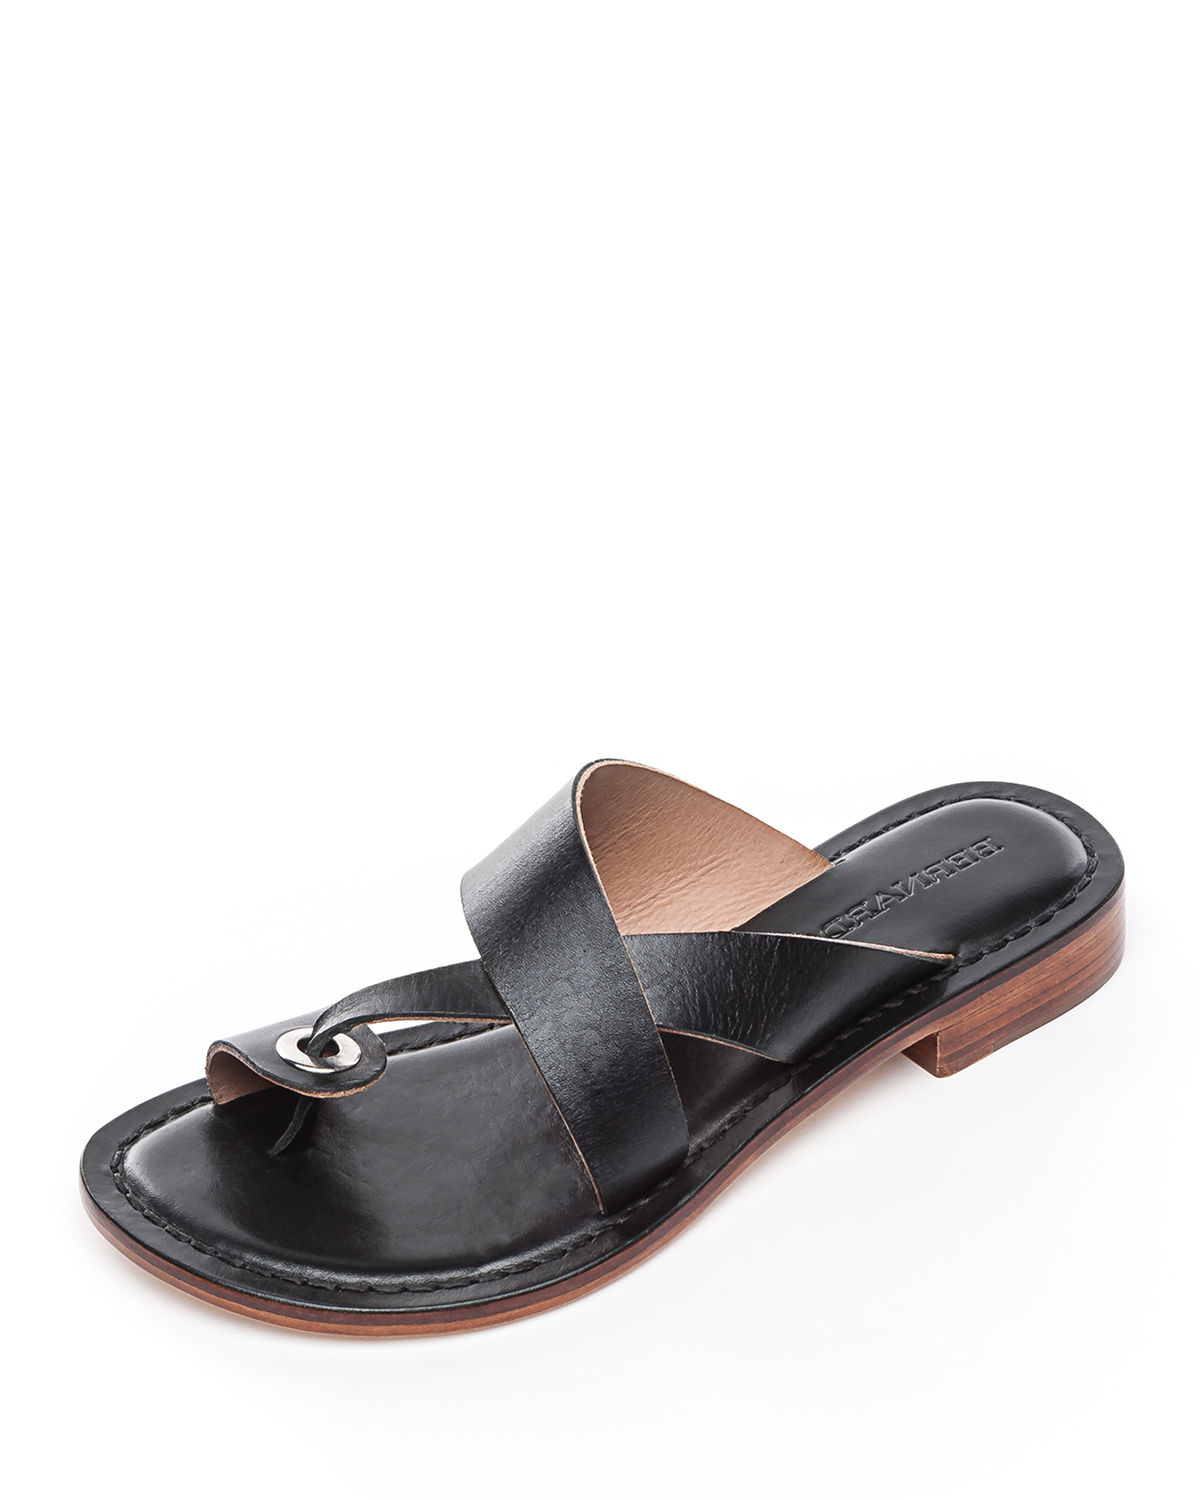 86e137c2b61 Bernardo Tia Flat Slide Sandals In Black Leather